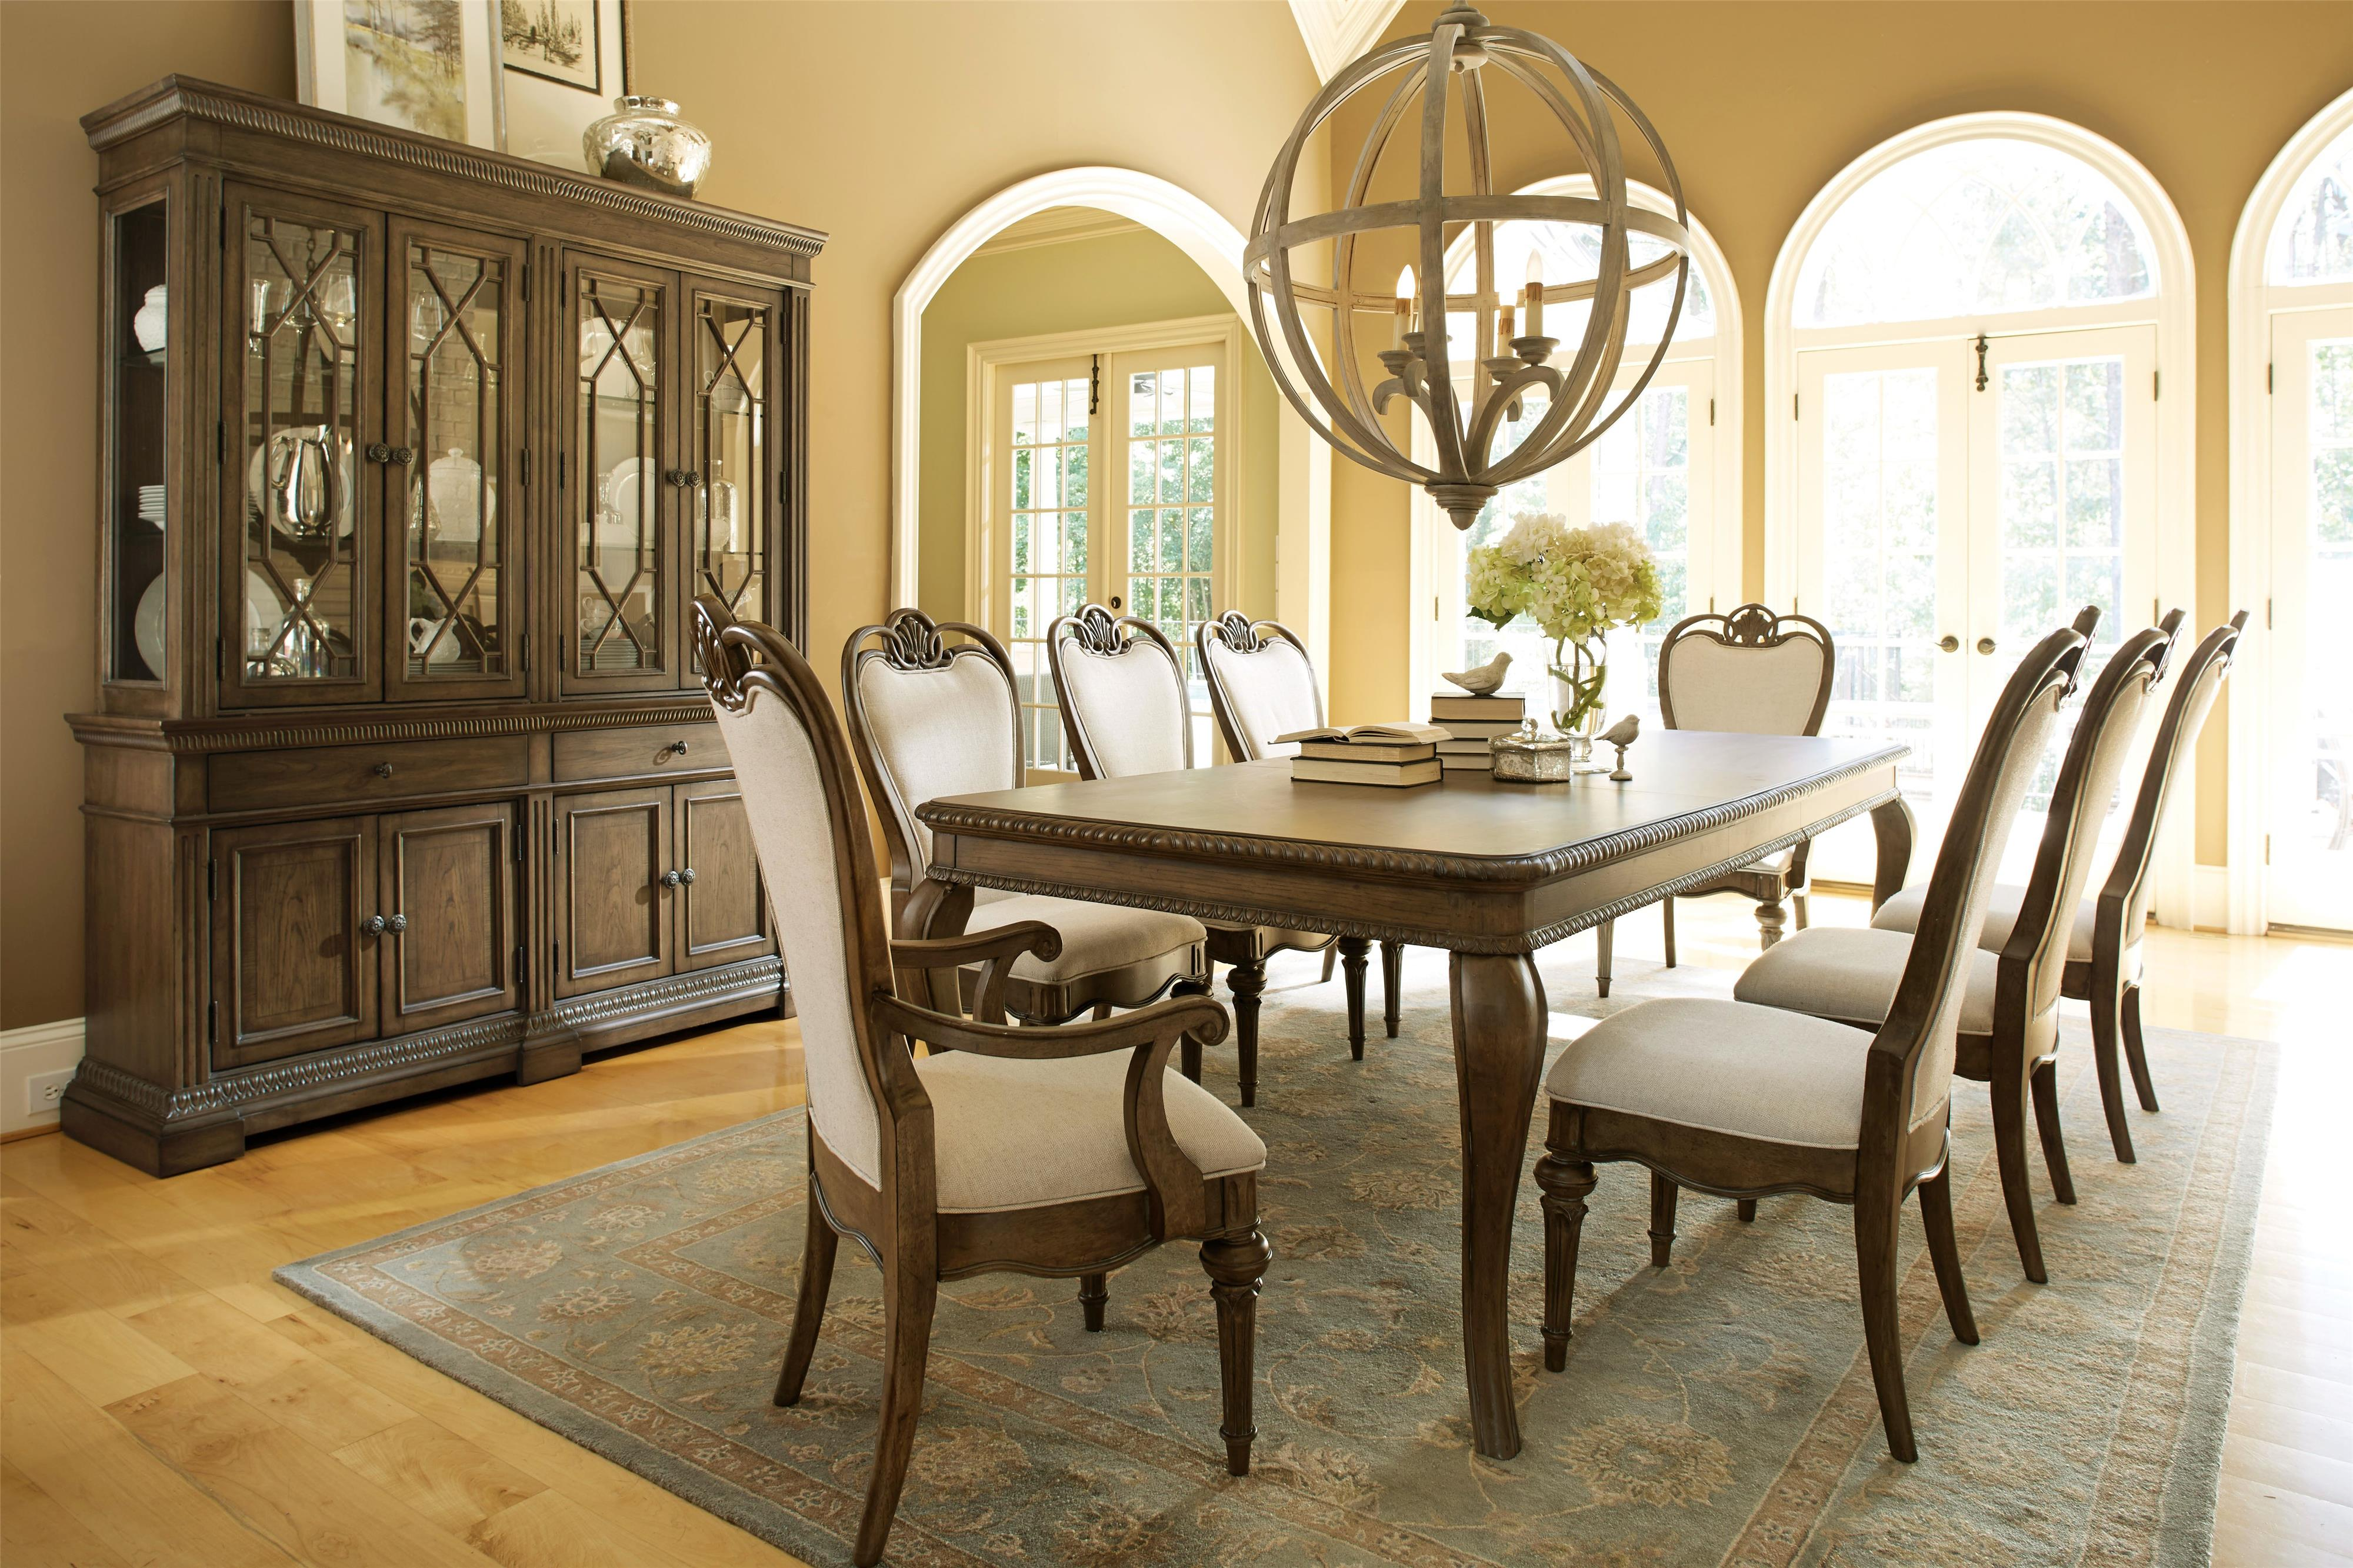 Legacy Dining Room Furniture Legacy Classic Renaissance 9 Piece Formal Dining Room Group